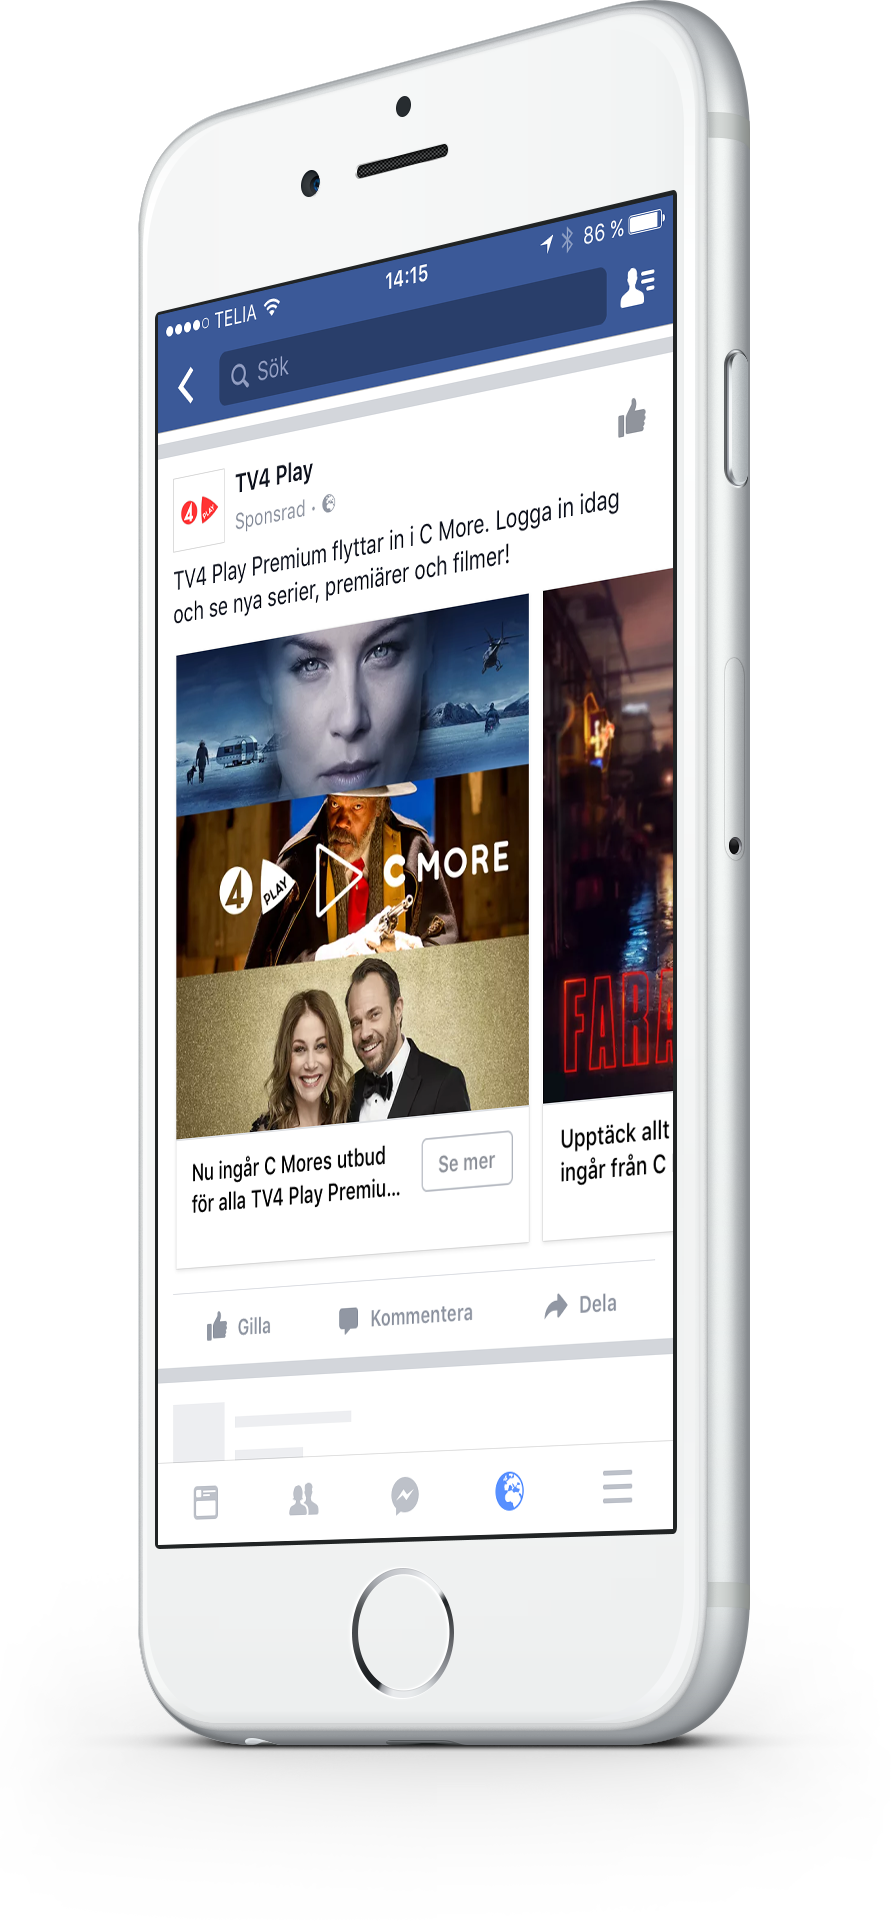 cellphone screen showing tv4 play facebook post